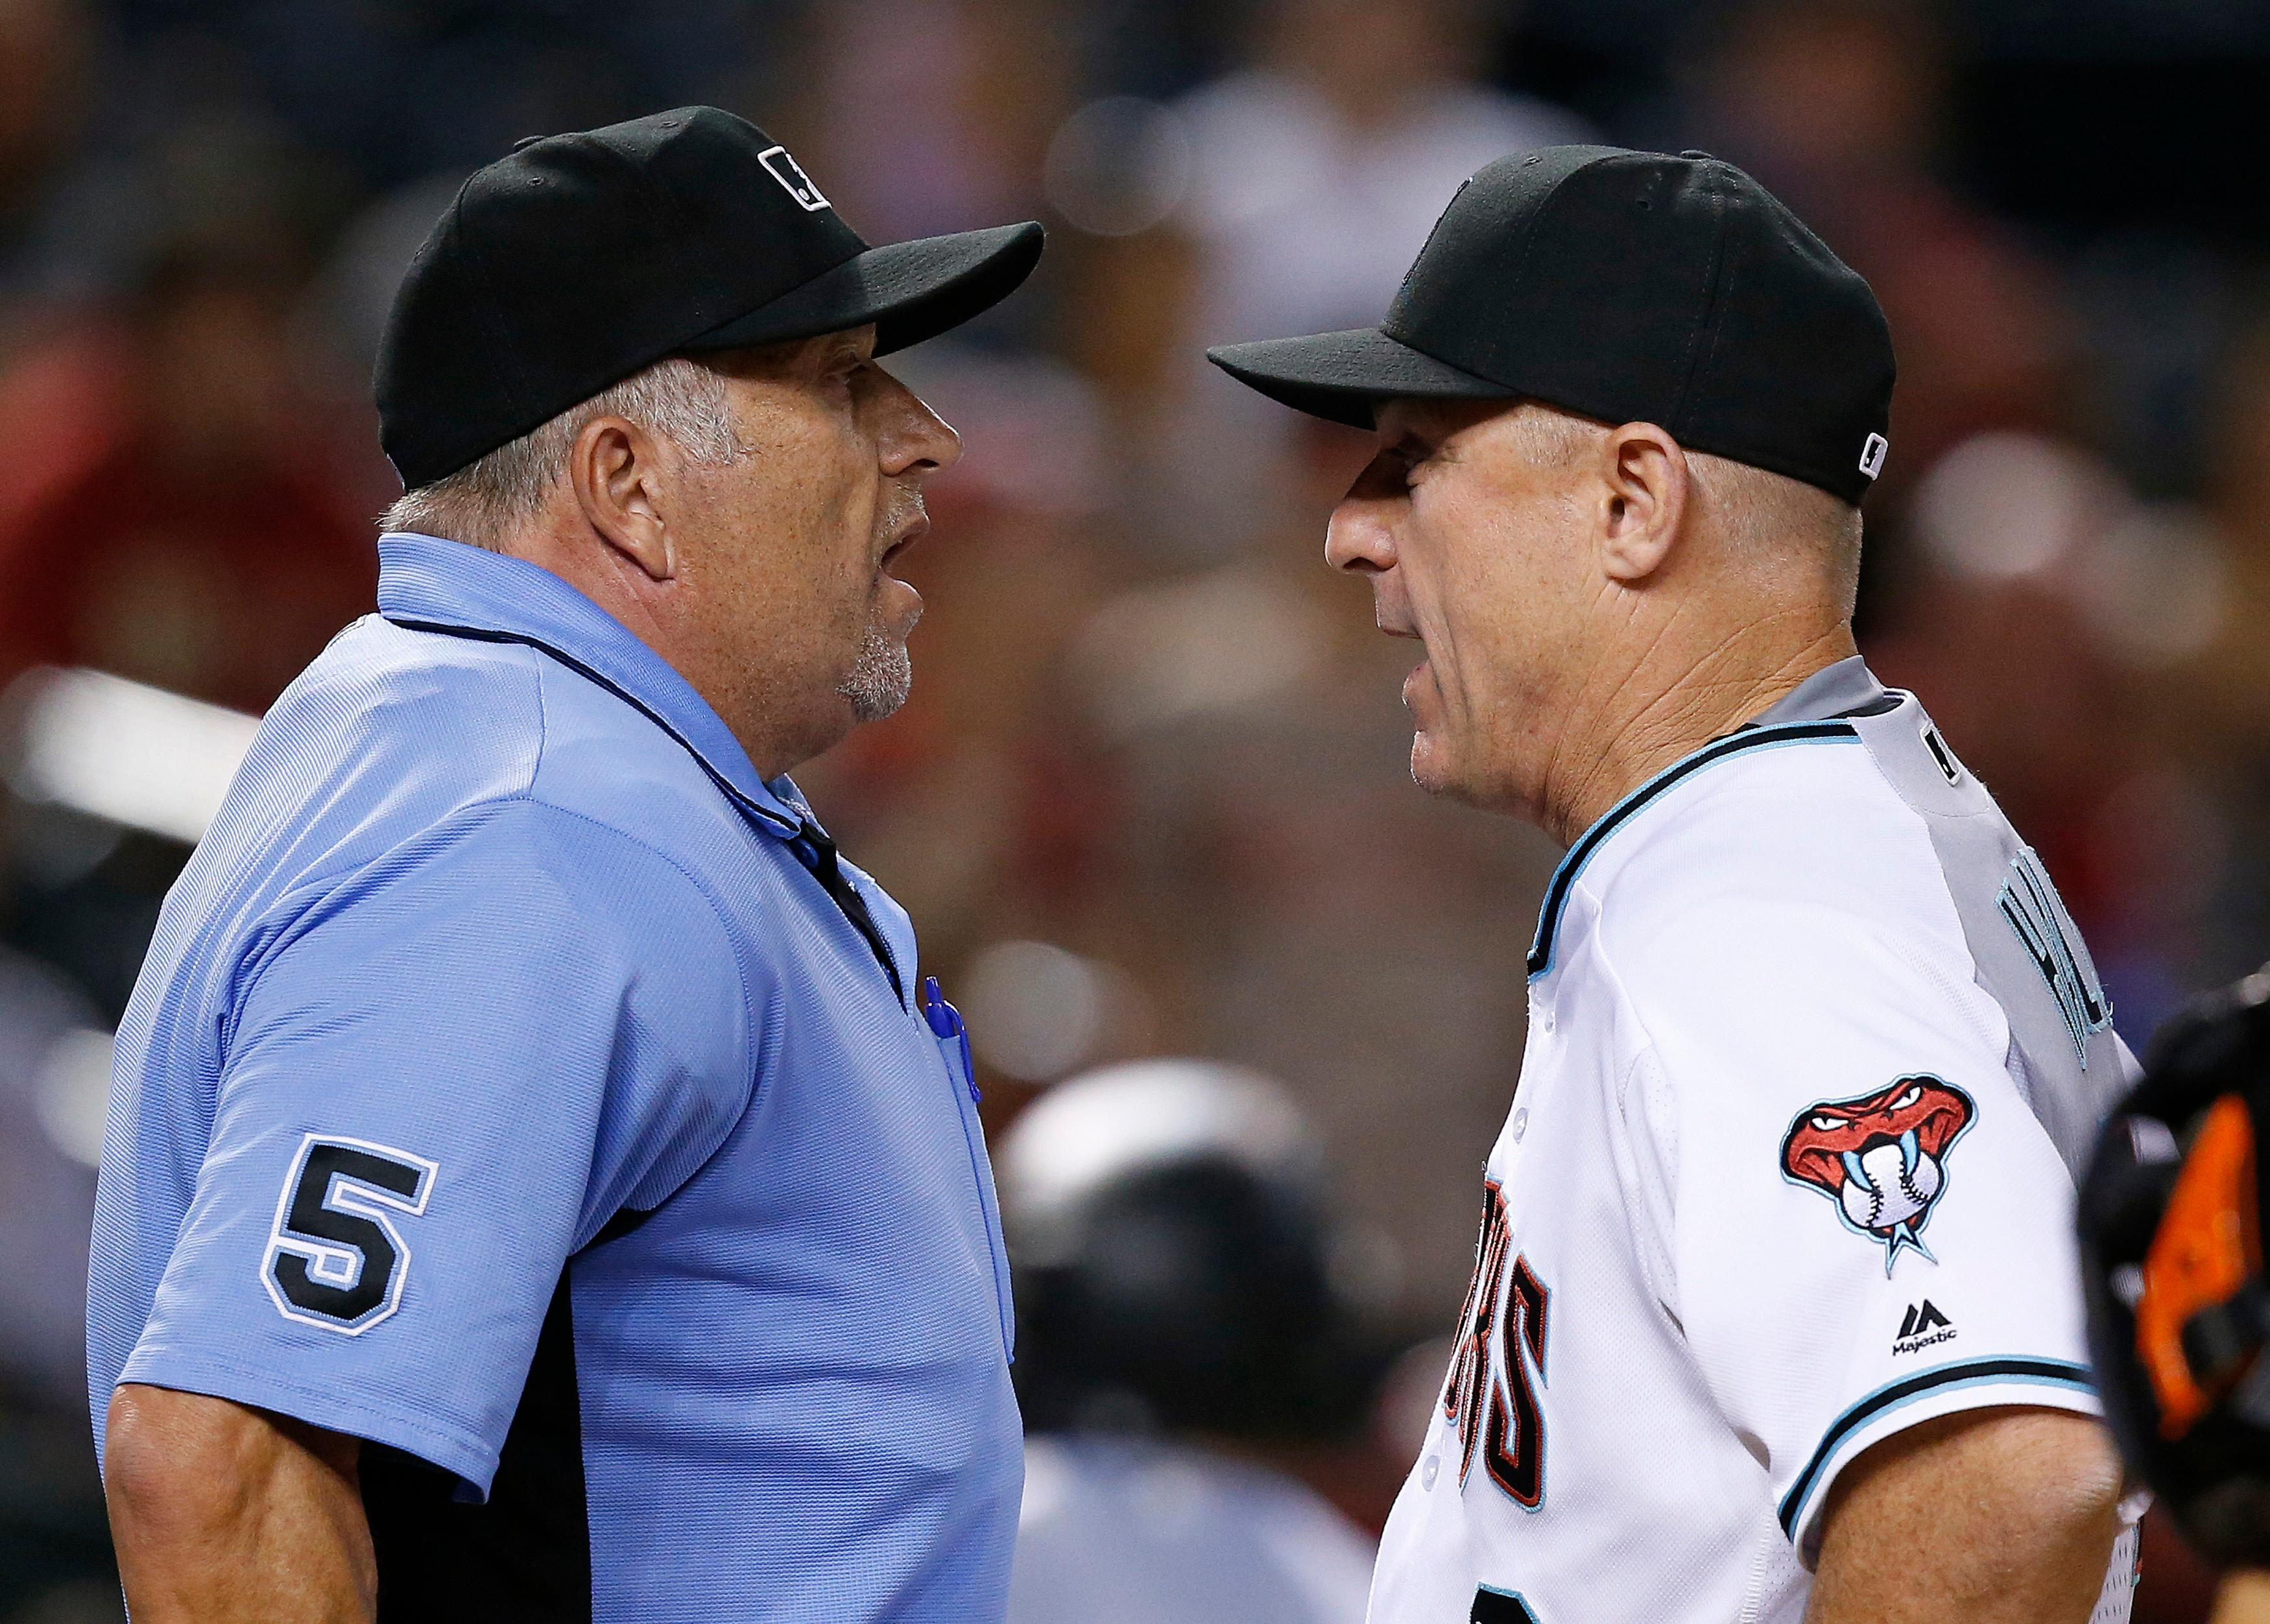 FILE - In this Sept. 10, 2016, file photo, Arizona Diamondbacks' Chip Hale, right, argues with umpire Dale Scott after Diamondbacks' Welington Castillo was thrown out of the game for arguing during the 12th inning of a baseball game against the San Francisco Giants in Phoenix. Rather than risk yet another concussion, Scott has decided to retire at 58. The veteran crew chief missed nearly the entire 2017 season after a foul ball off the bat of Baltimore slugger Mark Trumbo in Toronto on April 14, caught him hard in the mask, causing Scott's second concussion in nine months and fourth in five years. (AP Photo/Ross D. Franklin, File)